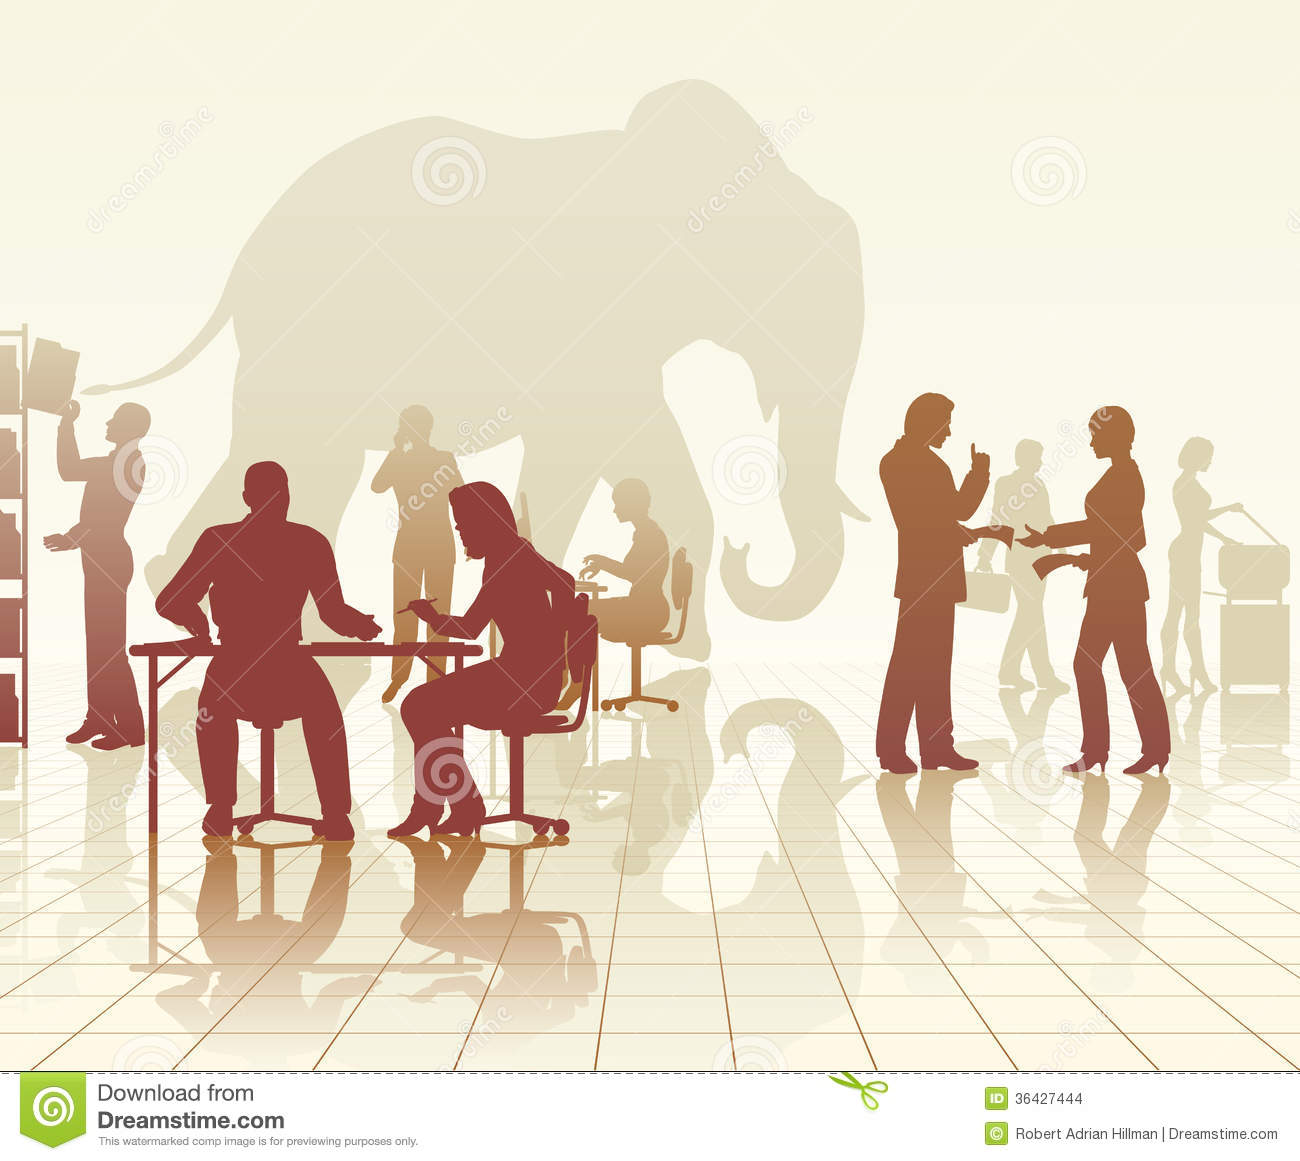 Elephant in the office stock vector. Illustration of ...